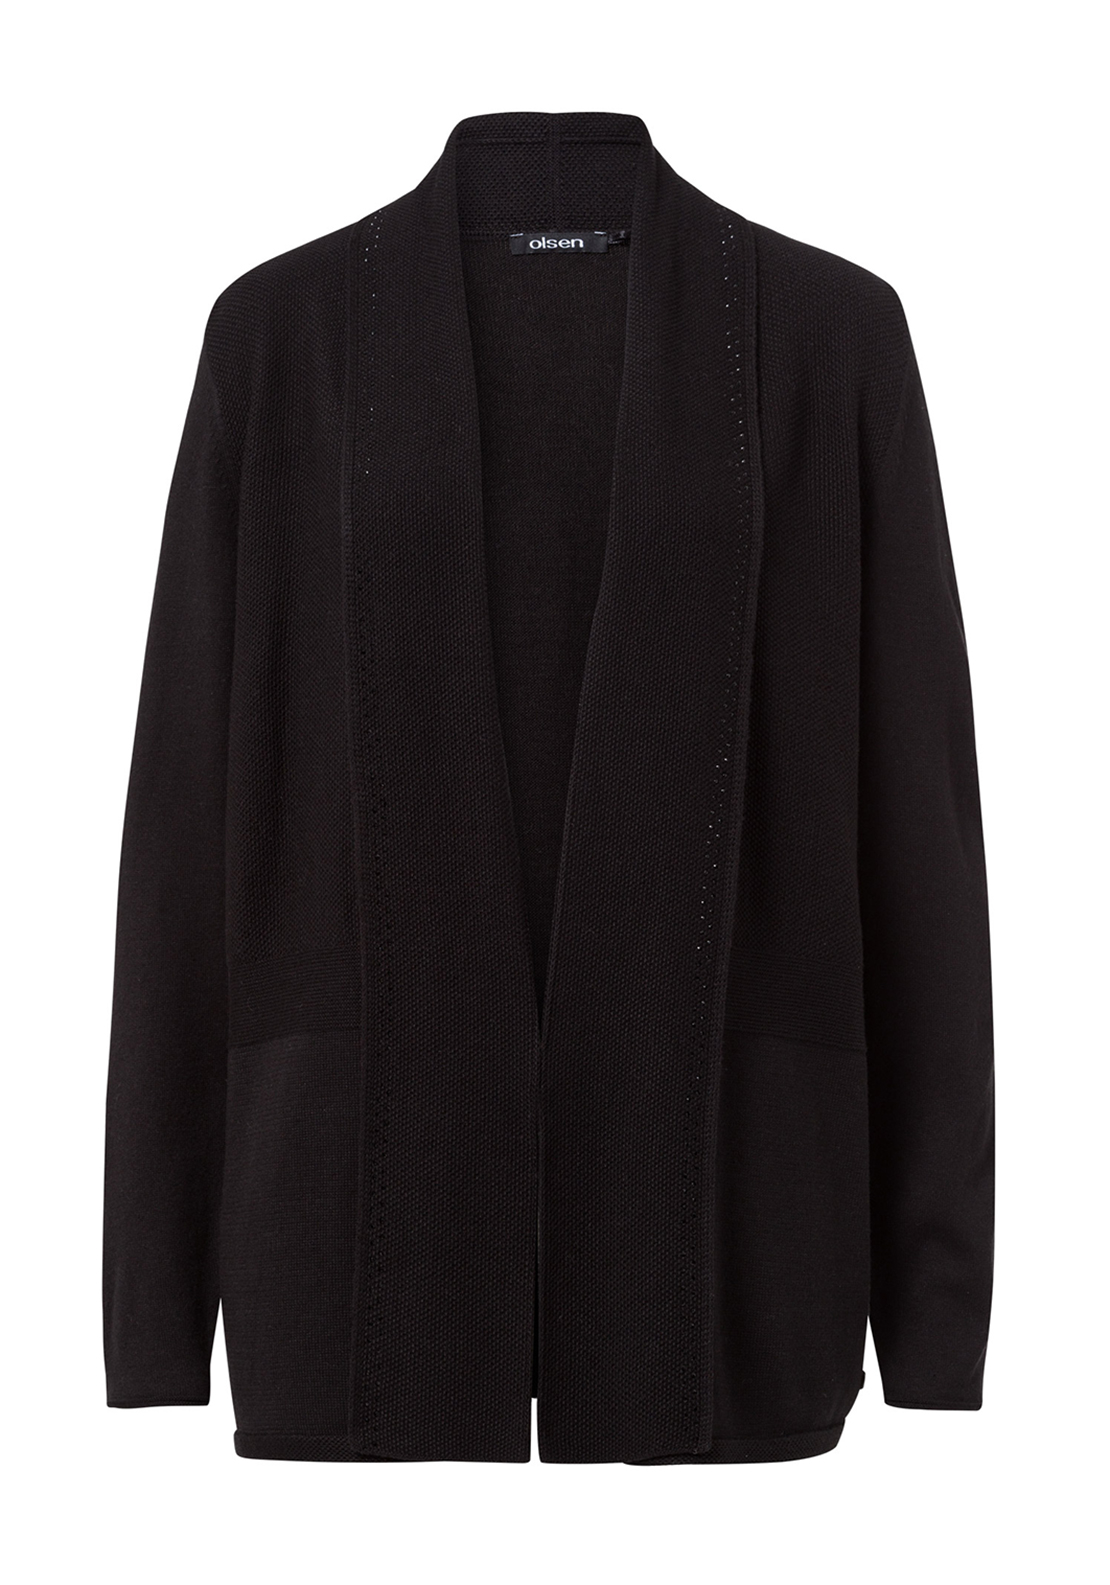 Olsen Embellished Cotton Blend Cardigan, Black